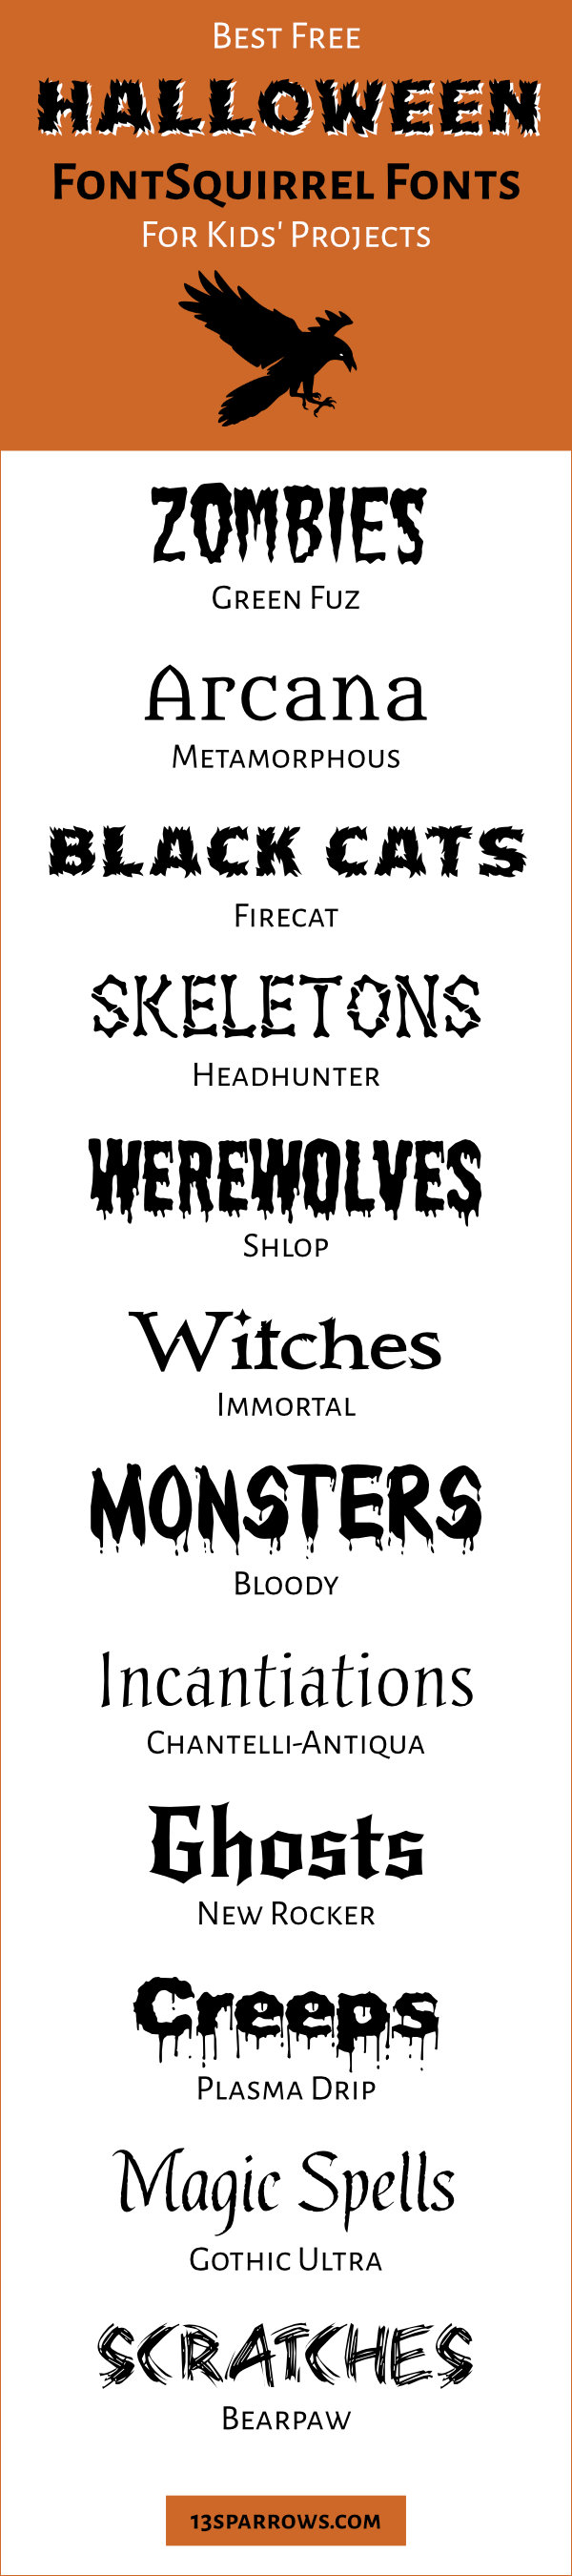 Free Halloween fonts from fontsquirrel   13sparrows. If you are making spooky resources for kids, I've found some more great free fonts!